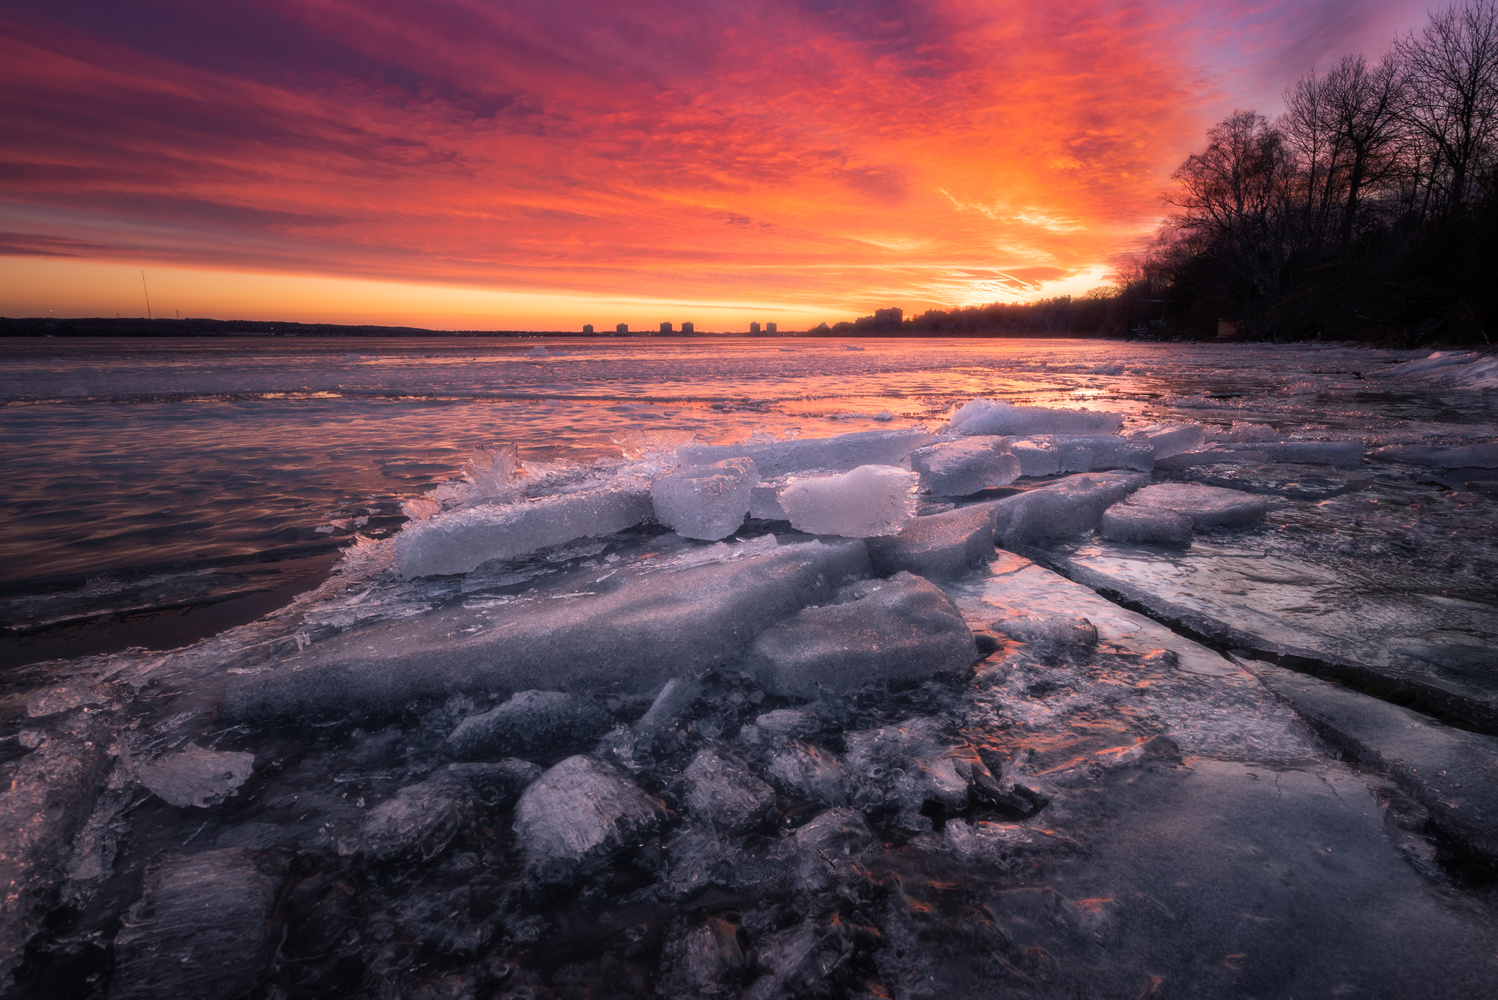 Fire & Ice by Will Dunn